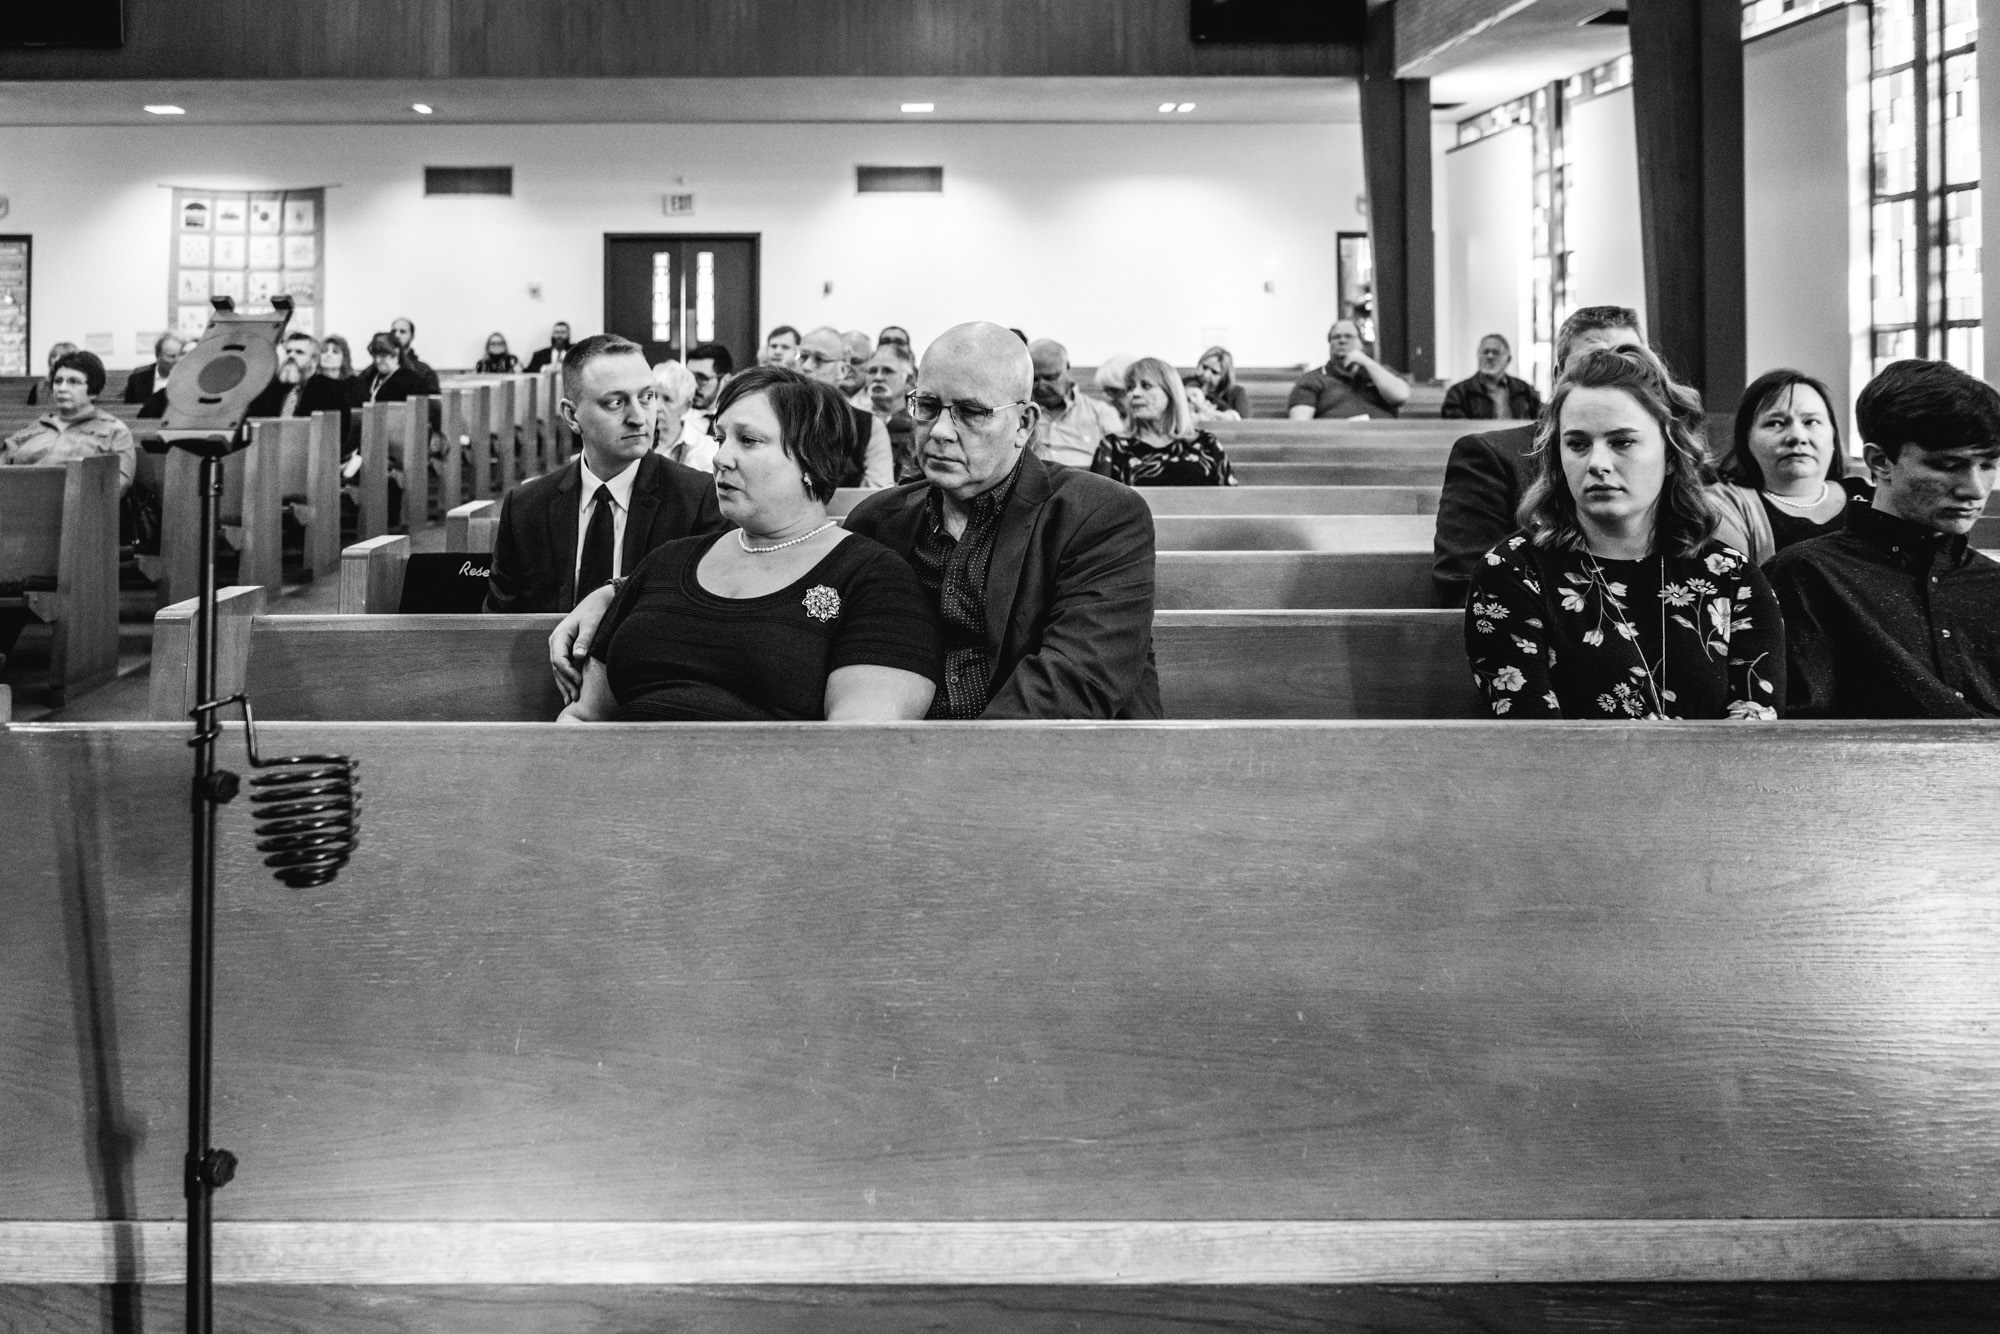 A family in mourning at the United Methodist Church in Greeley, Colorado during the funeral service for their beloved family member and friend